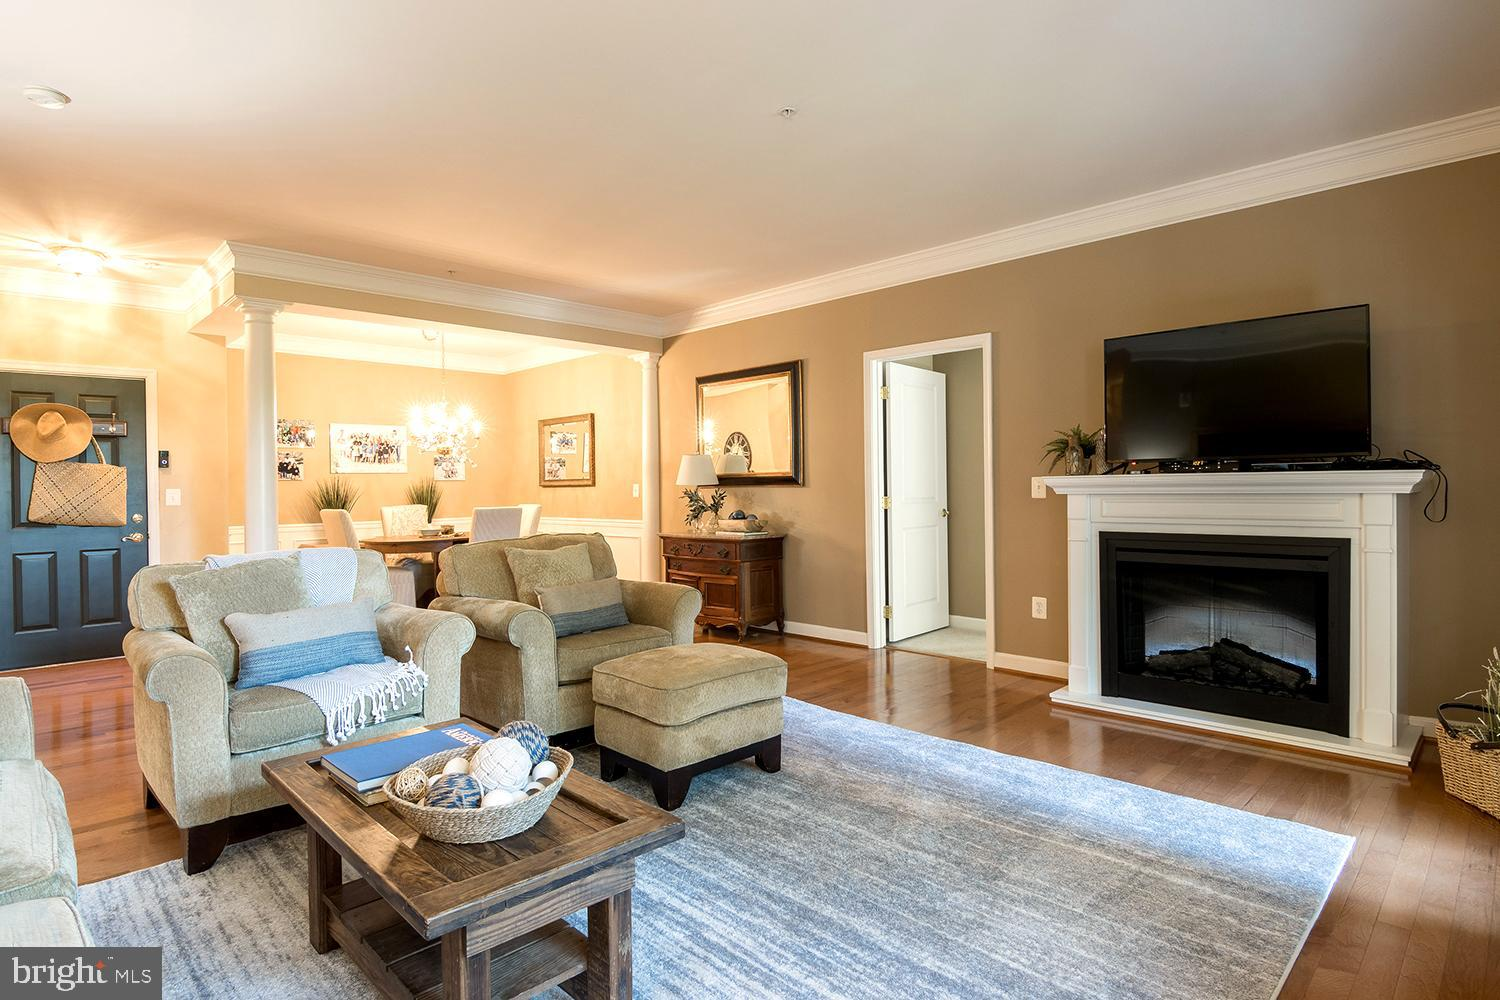 COVETED AMENITY RICH ANNAPOLIS CONDO in gated, active-adult FOUR SEASONS AT ST. MARGARETS! Healthy living 55-PLUS COMMUNITY with organized & singular activity clubhouse, pool, fitness center & billiard/party rooms! Condo boasting over 1700 sq. ft. of single, ground level living space with alfresco dining patio & verdant lawn backing to trees. Open concept floor plan with abundant windows bathing rooms in light. Masterful detailing with column-framed Dining Room expanding into picture window Living Room with gas fireplace. Lustrous wood flooring, distinctive moldings & decorator neutral paint palette! French door spilling out to lounging & lunching patio. Stainless & granite Kitchen with computer/recipe workstation & window bay breakfast nook. Three breezy Bedrooms with NEW neutral carpeting. Two stylishly appointed Full Baths (one en suite). Parking pad & private 1-car garage with inside entrance. Conveniently located to shopping, restaurants, public library, walking trails and RTs 2/50/97! A YEAR-ROUND CHESAPEAKE BAY STAYCATION.